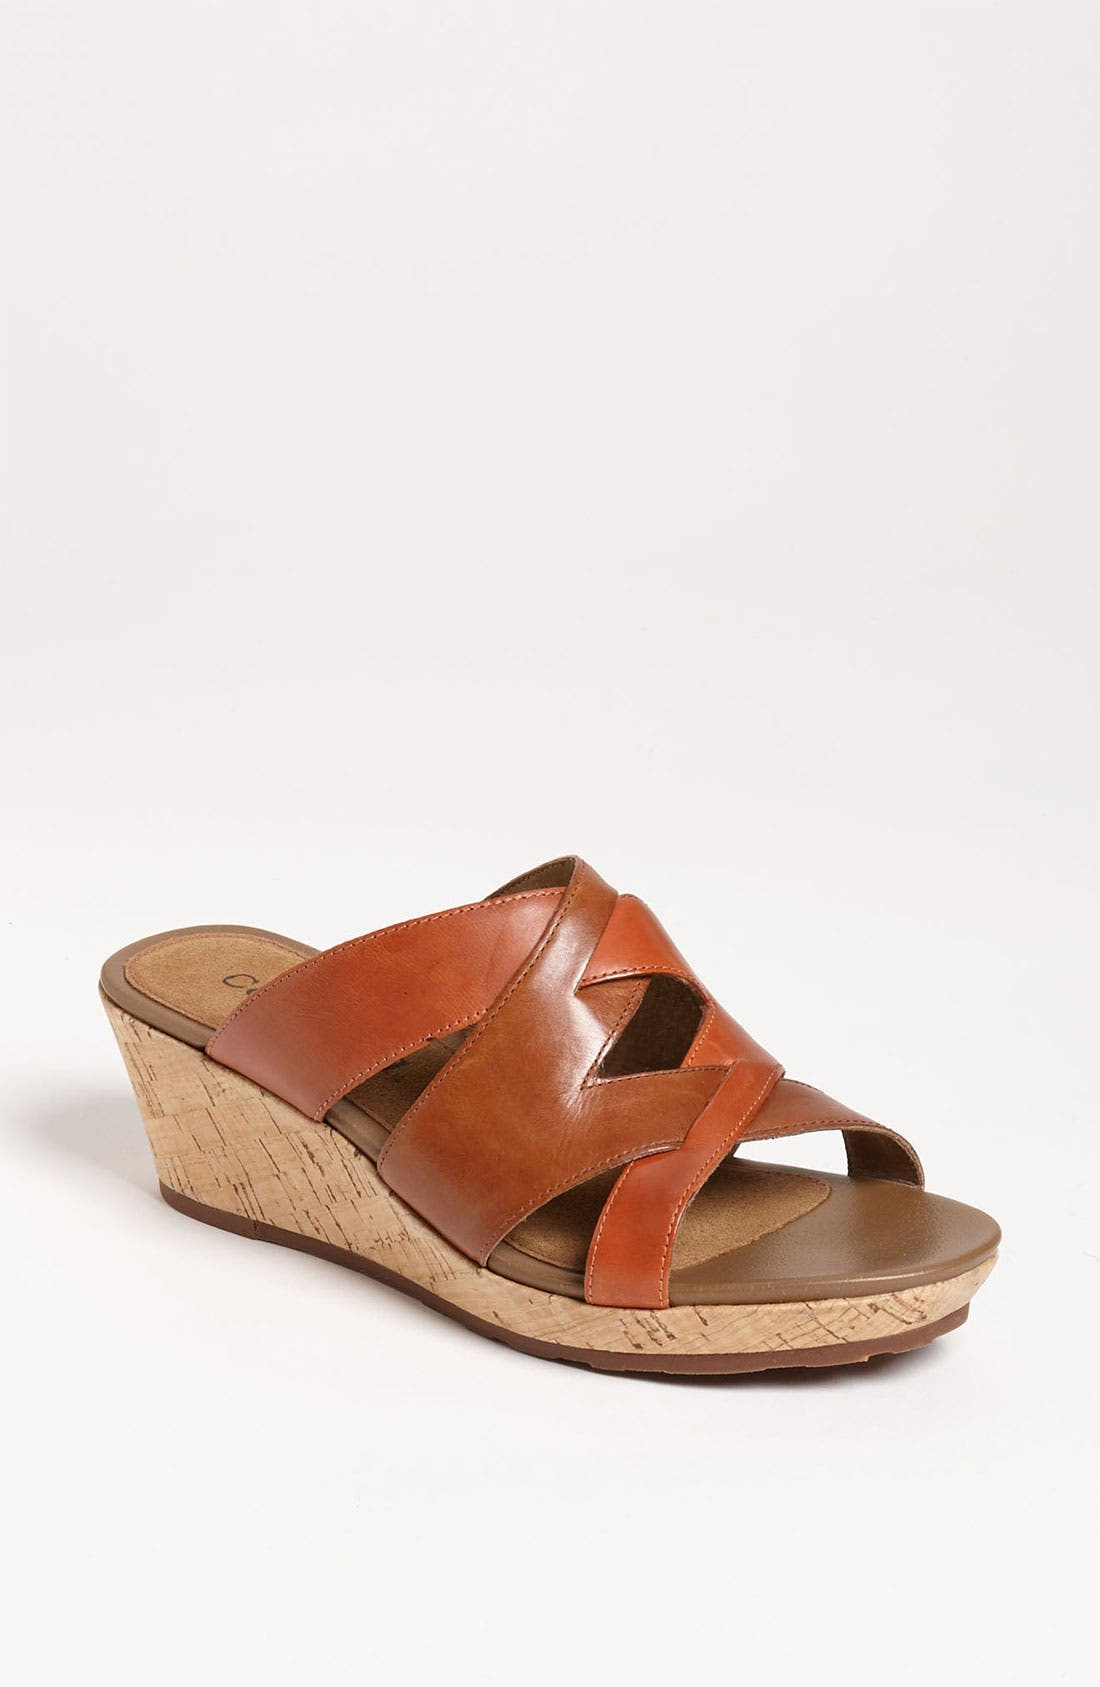 Alternate Image 1 Selected - Cobb Hill 'Natasha' Sandal